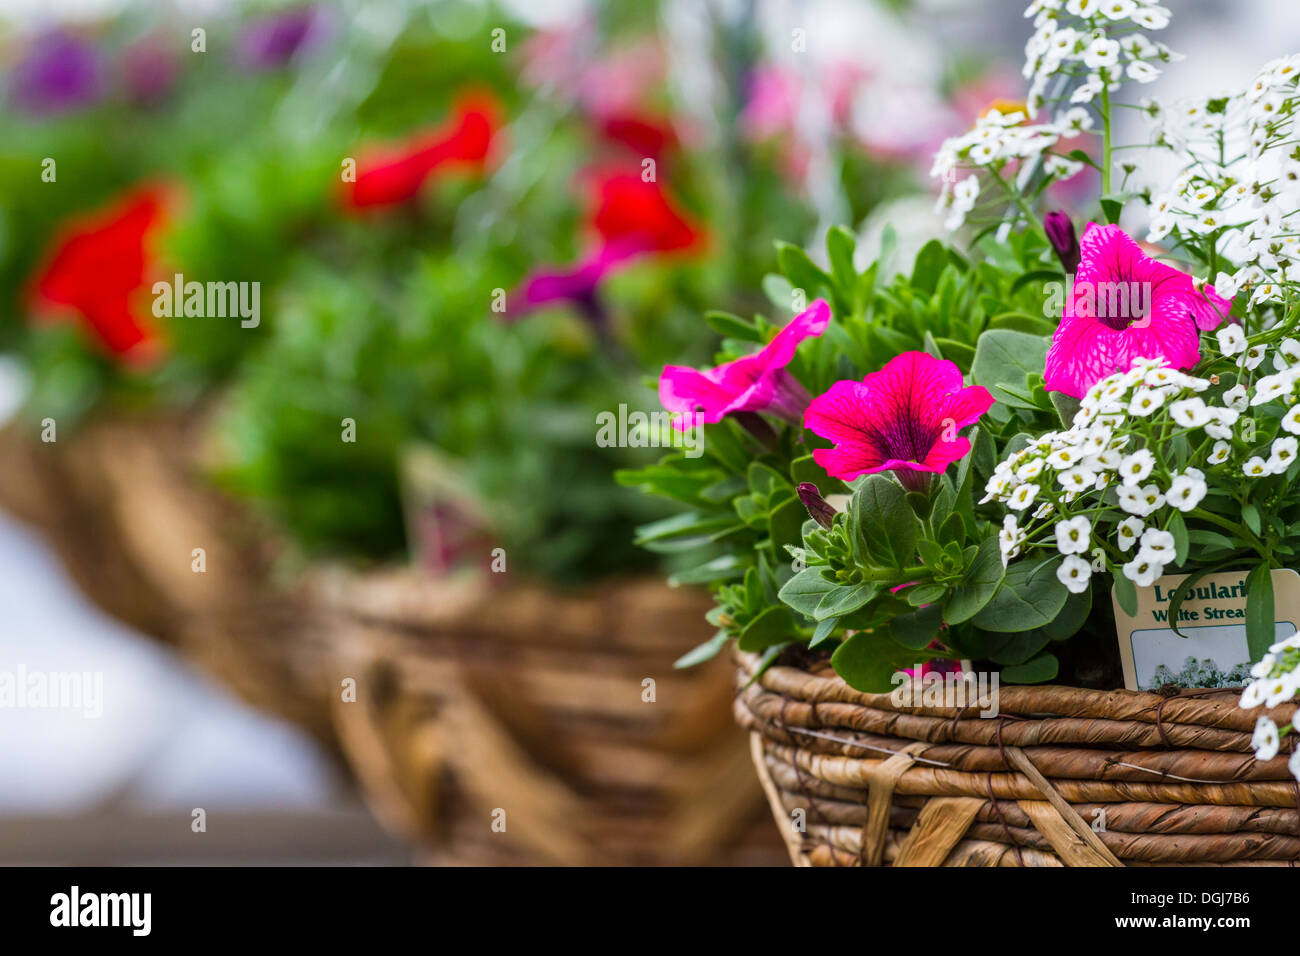 Hanging baskets being grown for sale in a garden centre. - Stock Image